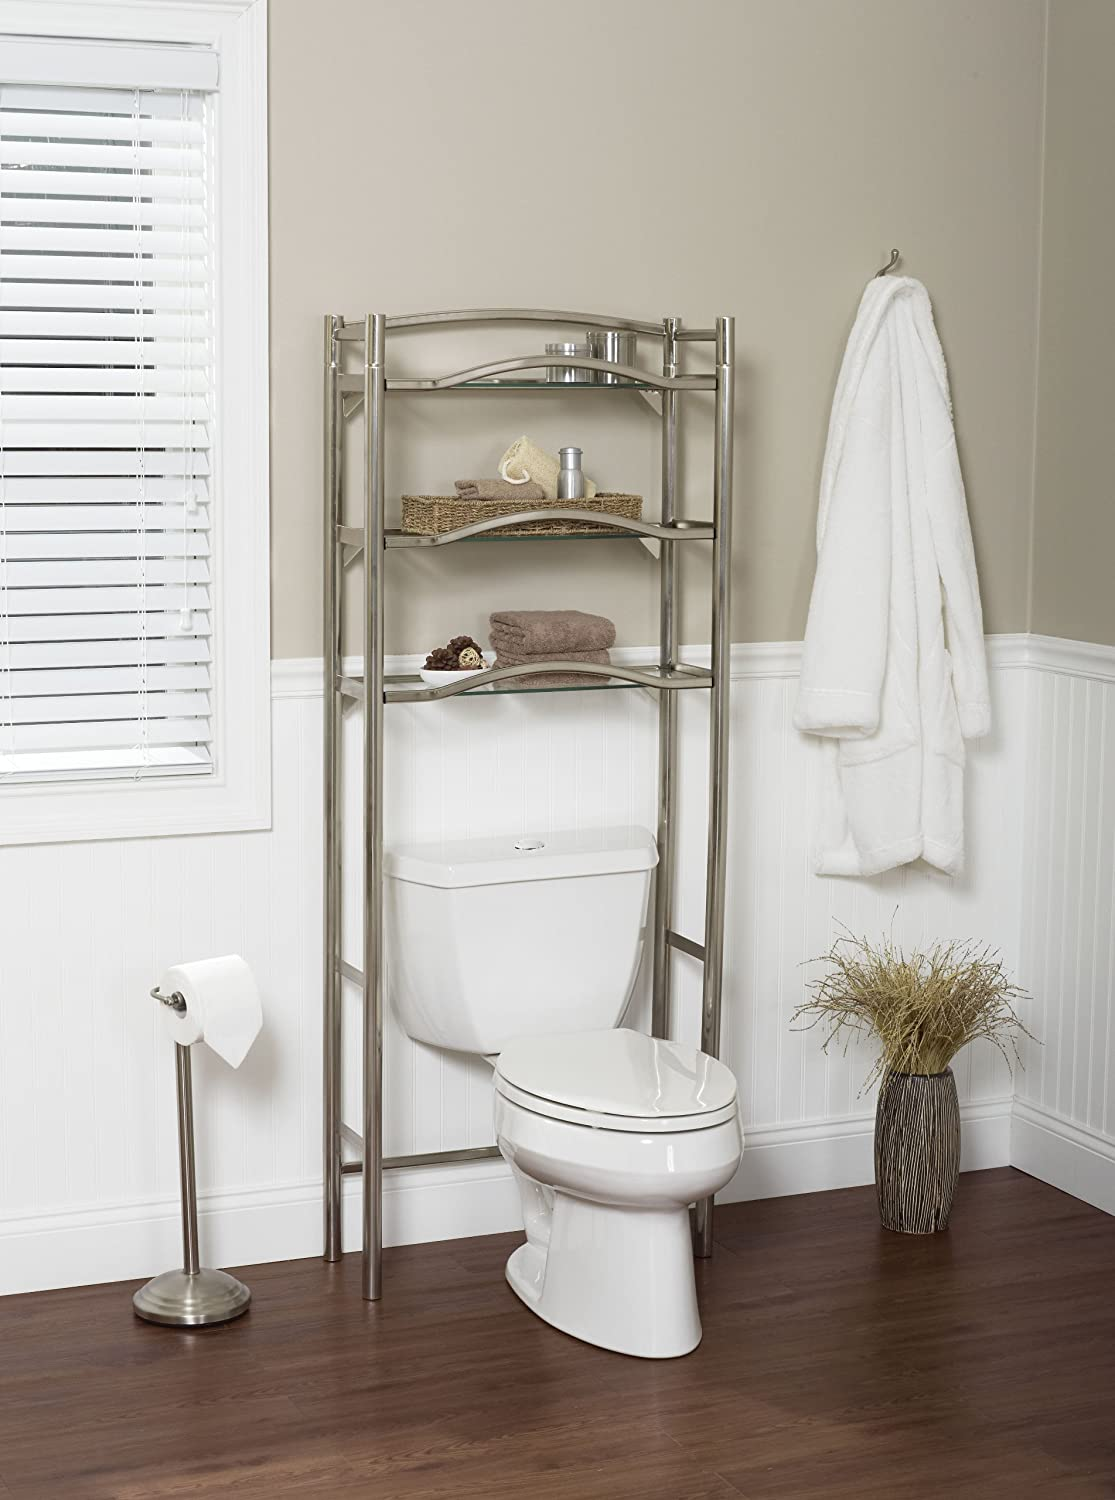 Space Saver Is Extra Tall To Fit Over Both Standard Height And Tall Toilets  Up To 38 Inch High. Patented Slide Fit Allows For Easy 15 Minute Assembly